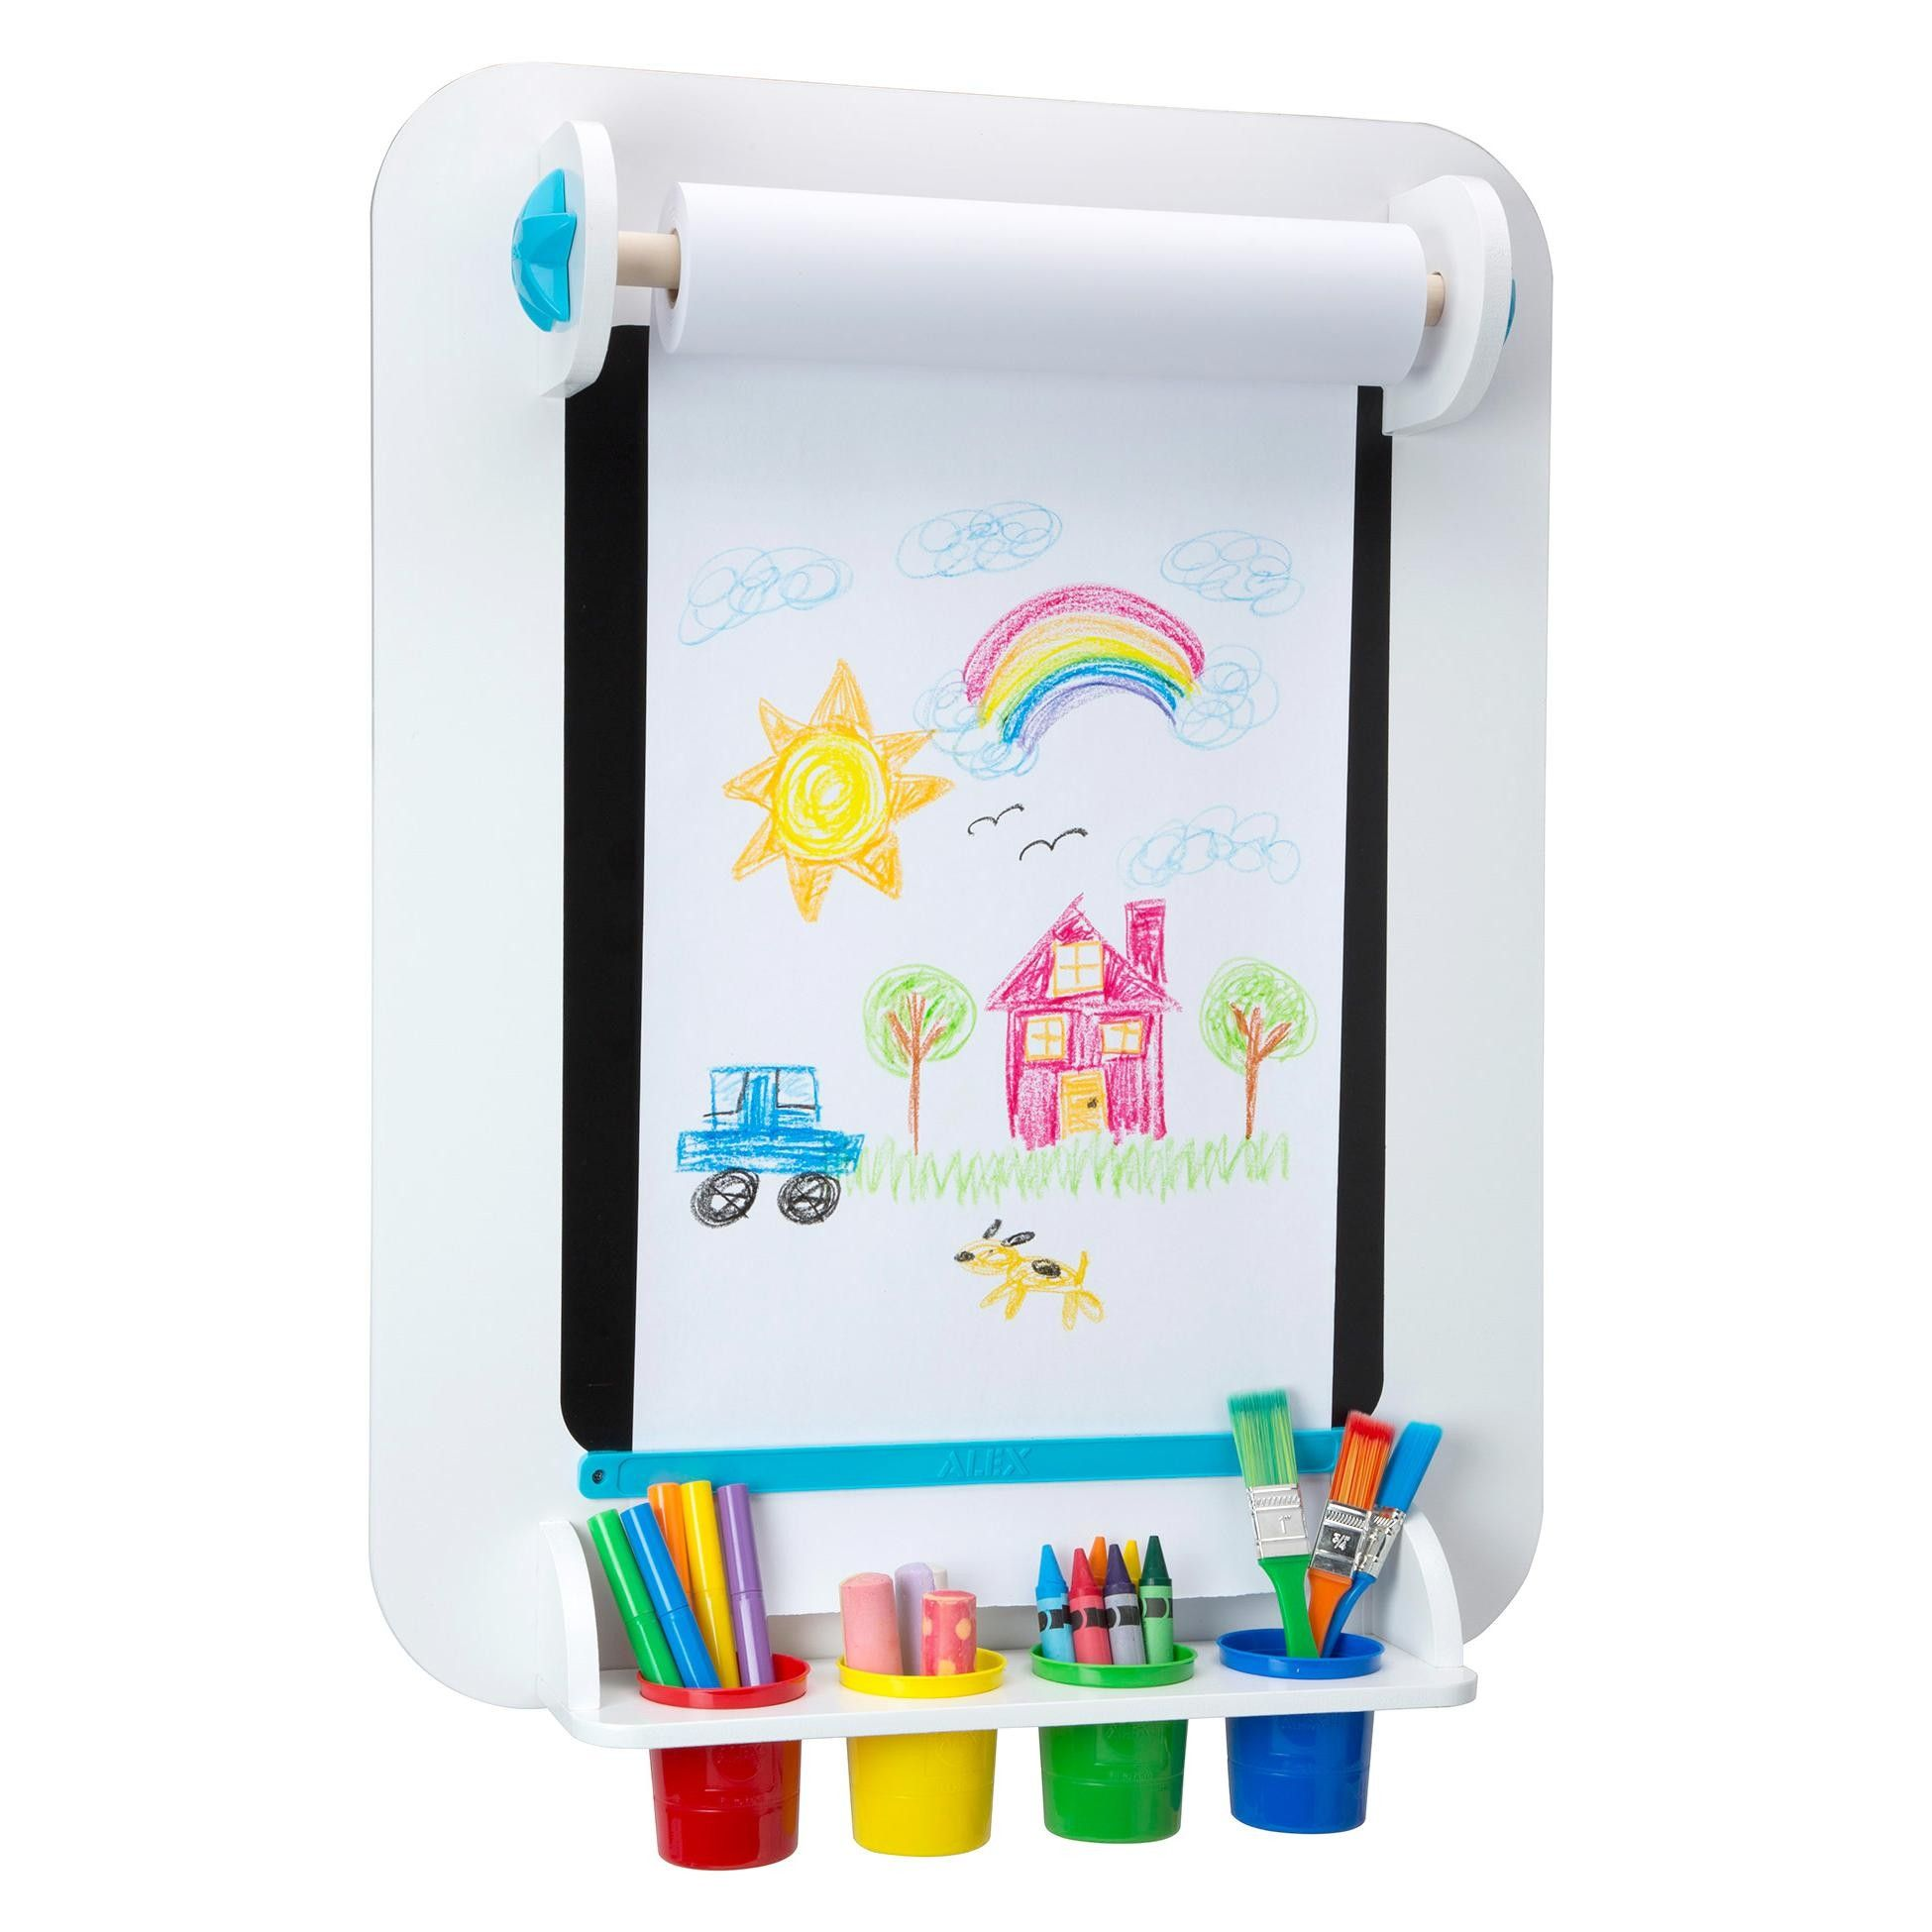 Alex toys my wall easel white 31nb art for kids